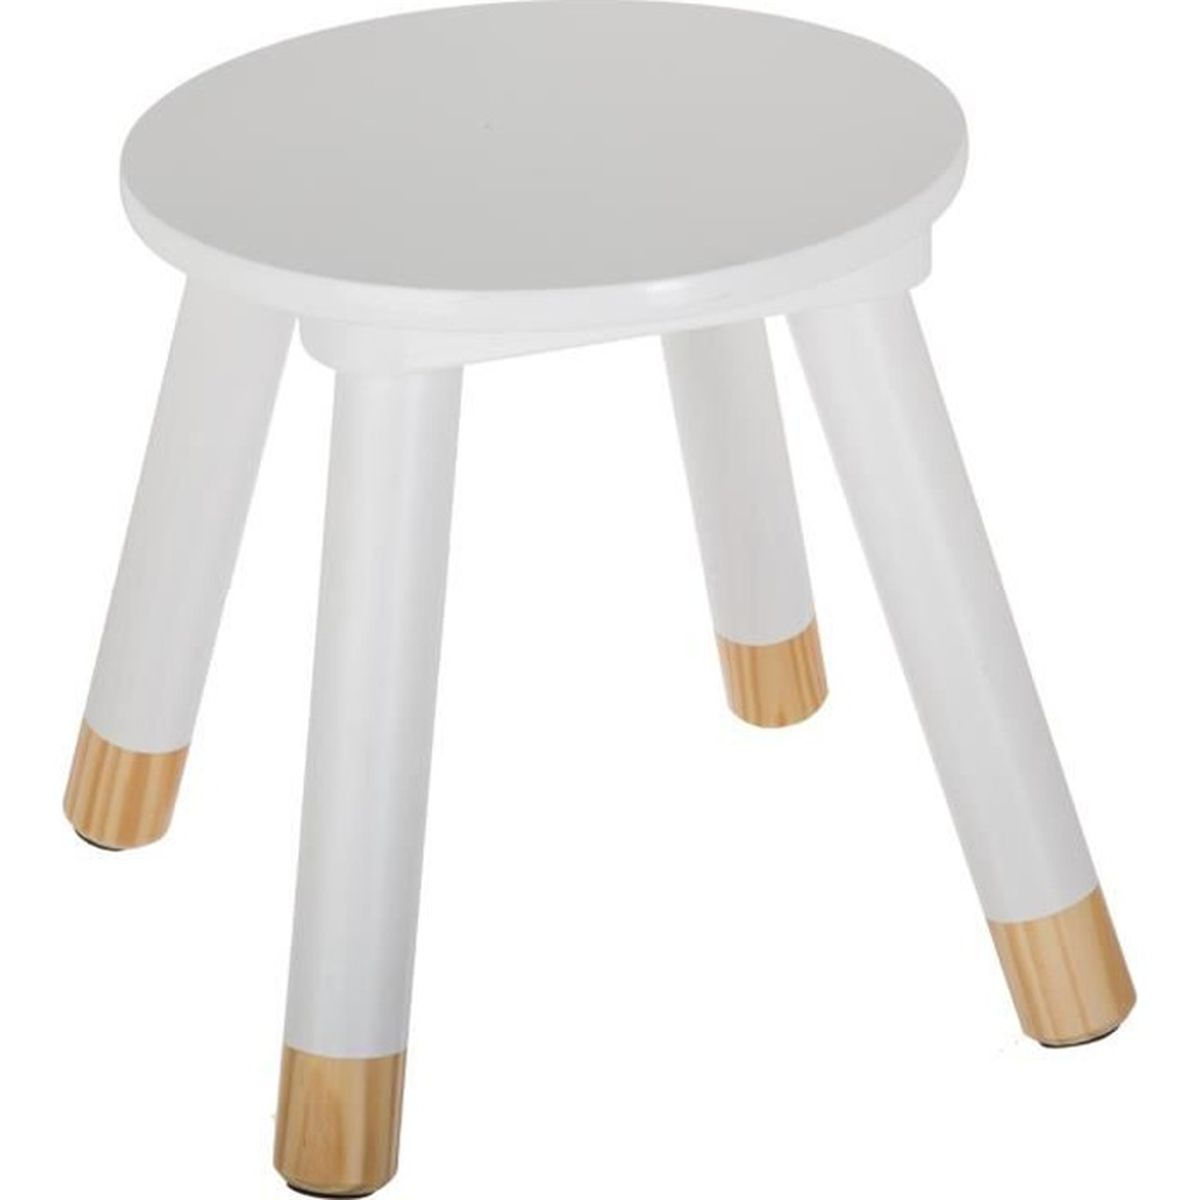 tabouret en bois pour enfants blanc blanc achat vente tabouret cdiscount. Black Bedroom Furniture Sets. Home Design Ideas